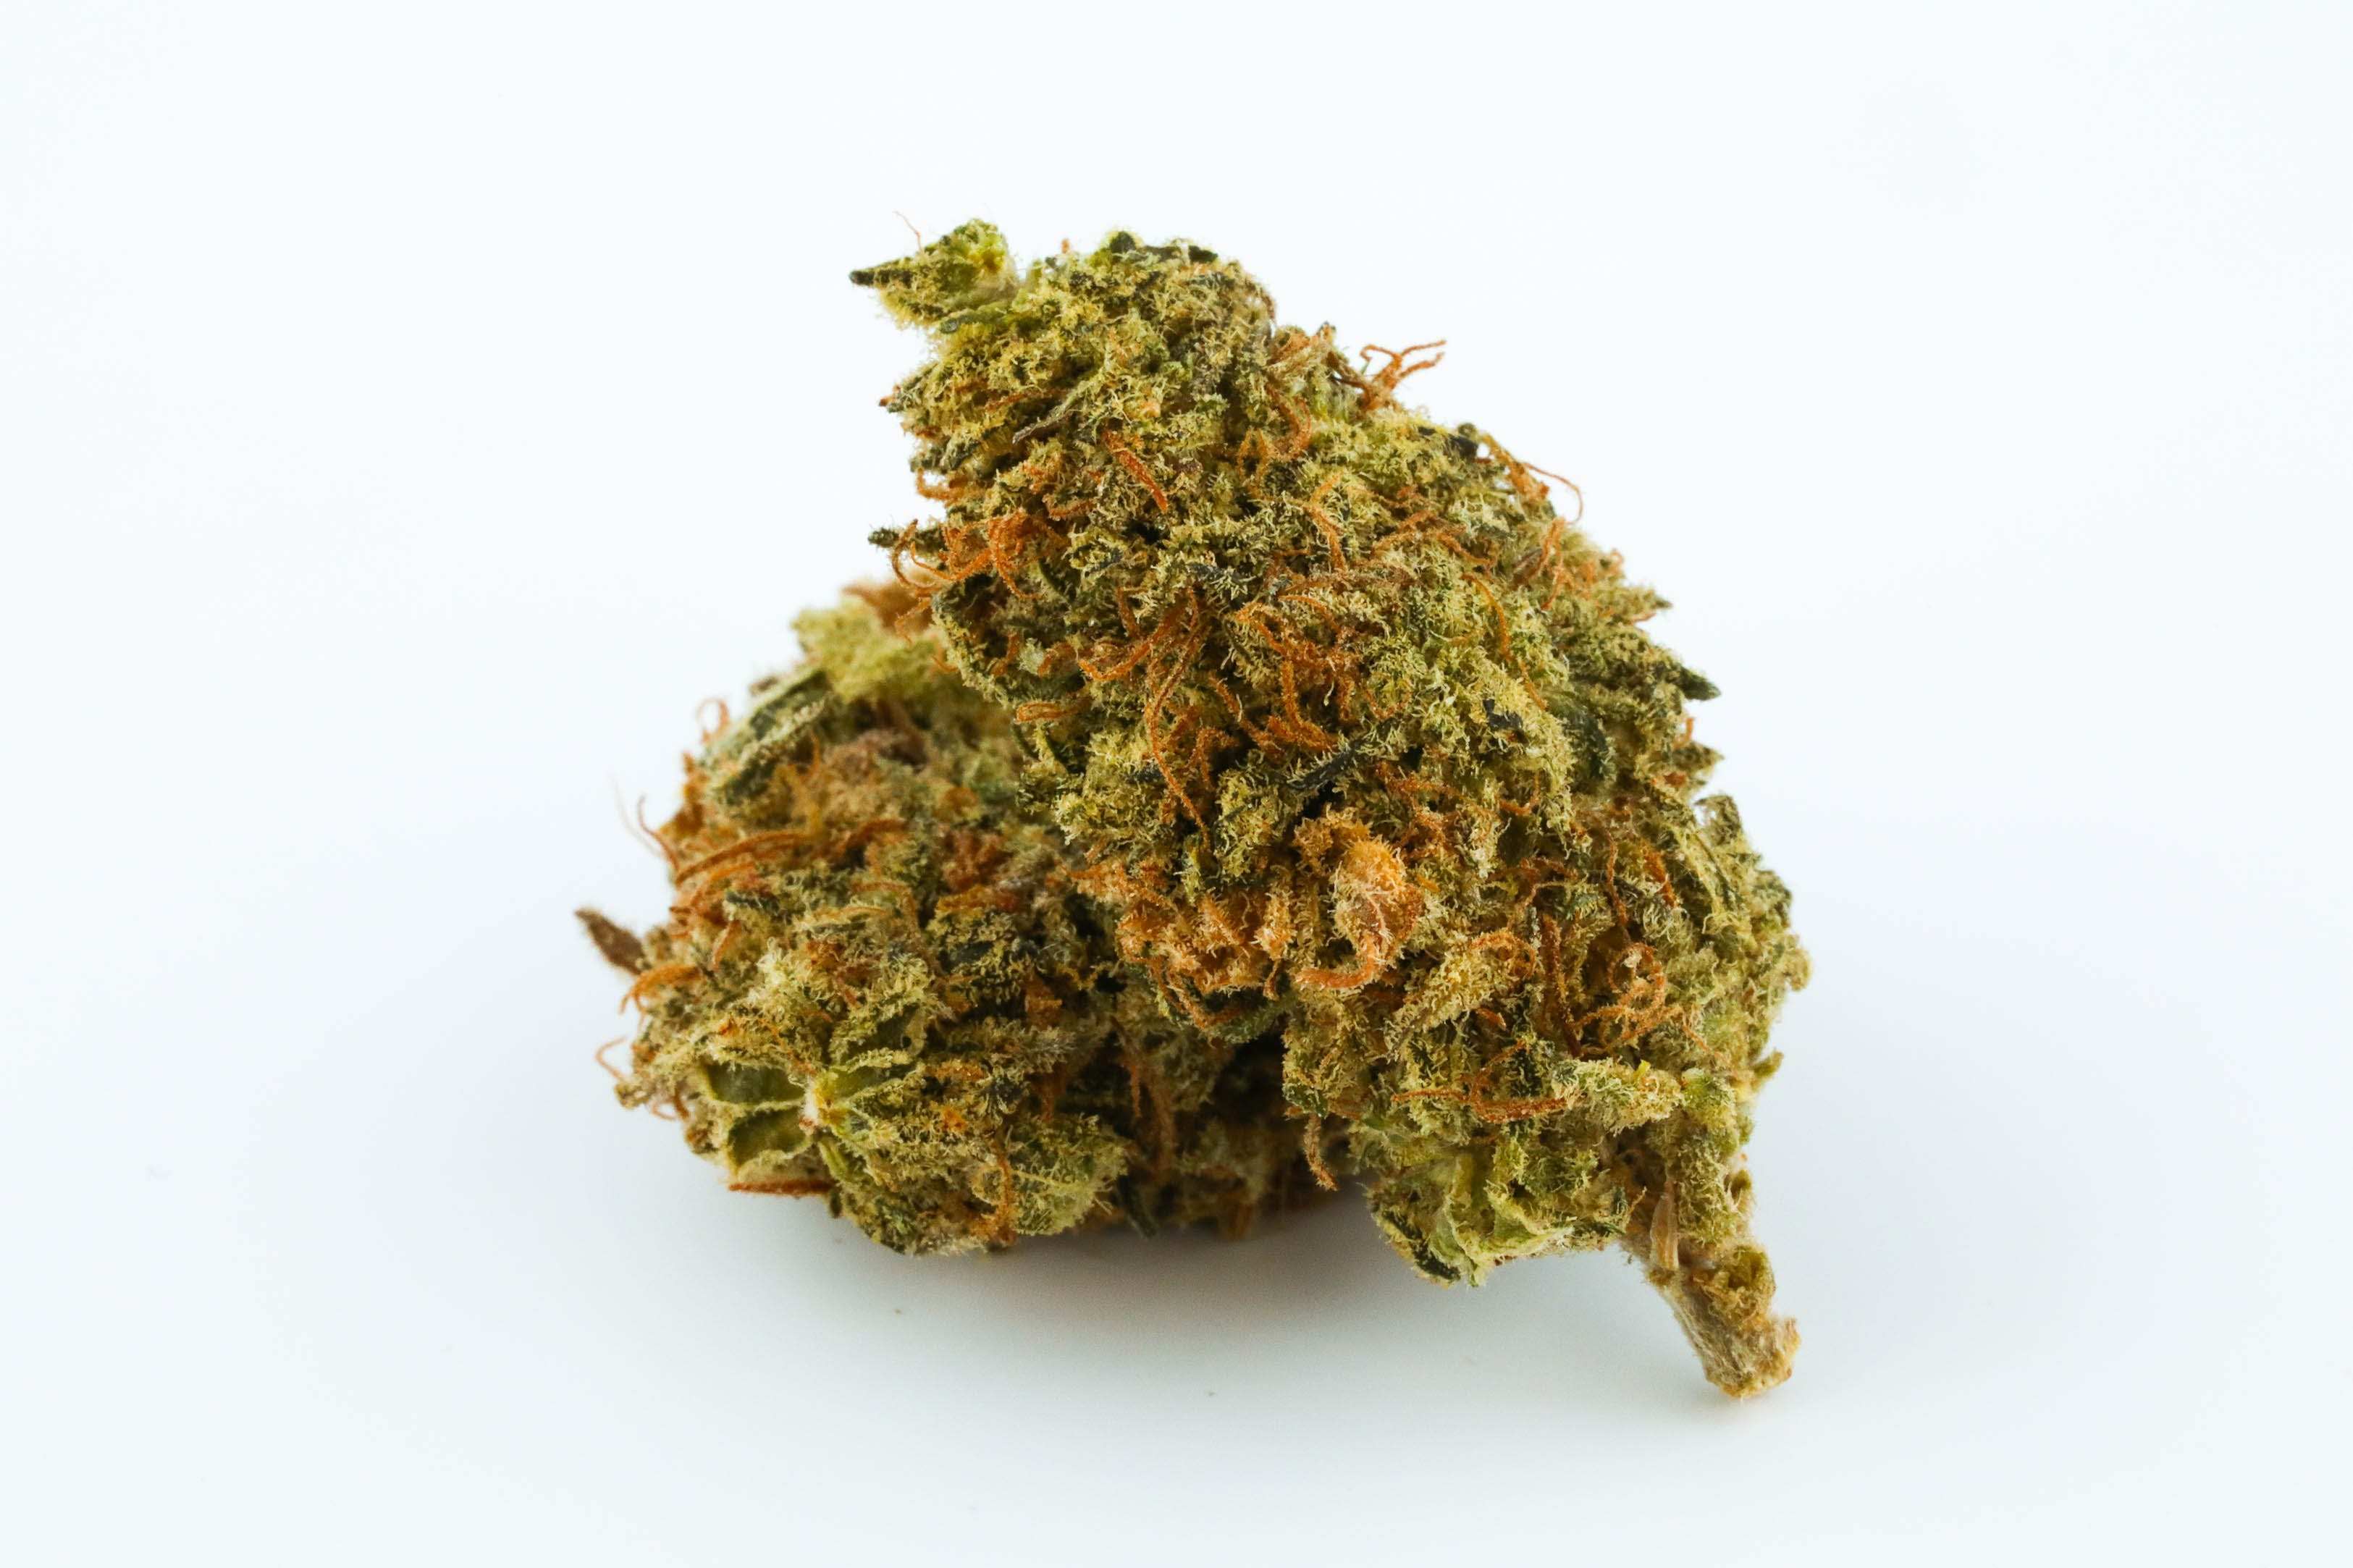 0G8A2709 10 Best Strains For Halloween